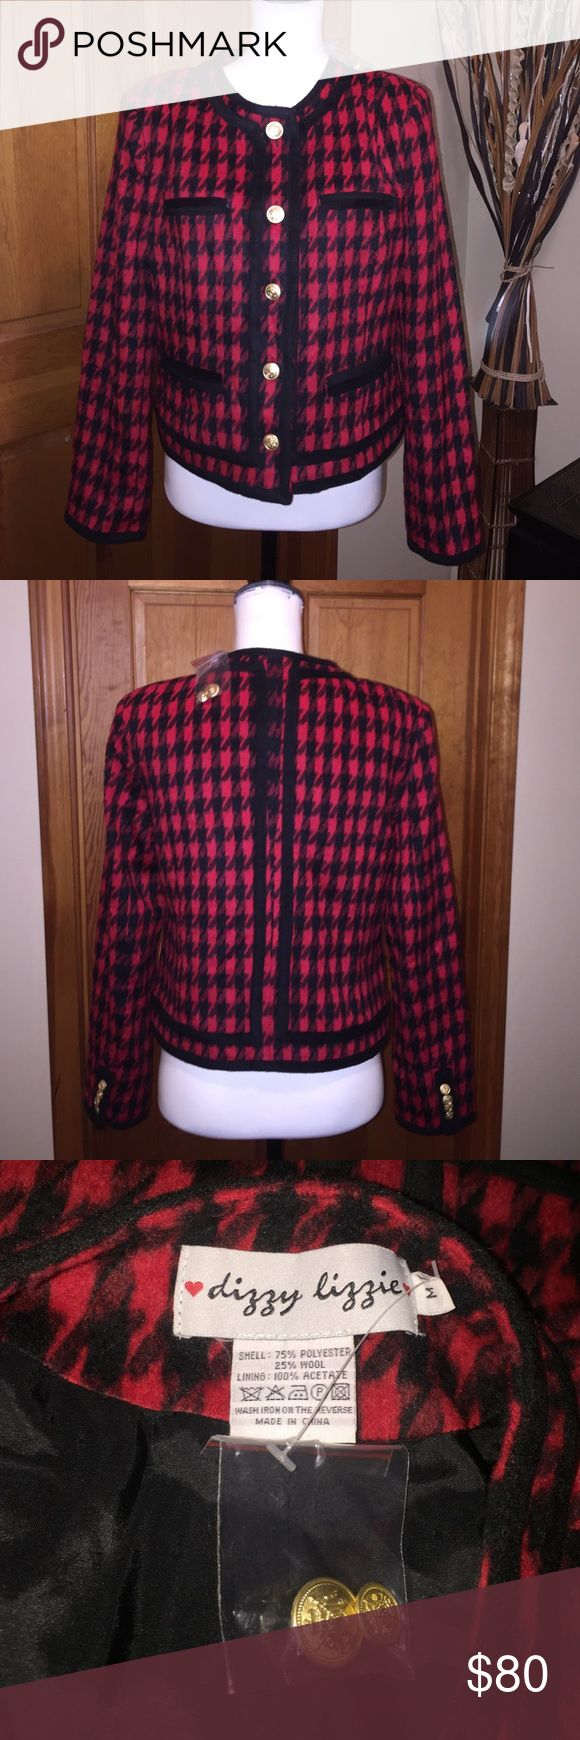 1000  ideas about Next Jackets on Pinterest | Sewing sleeves